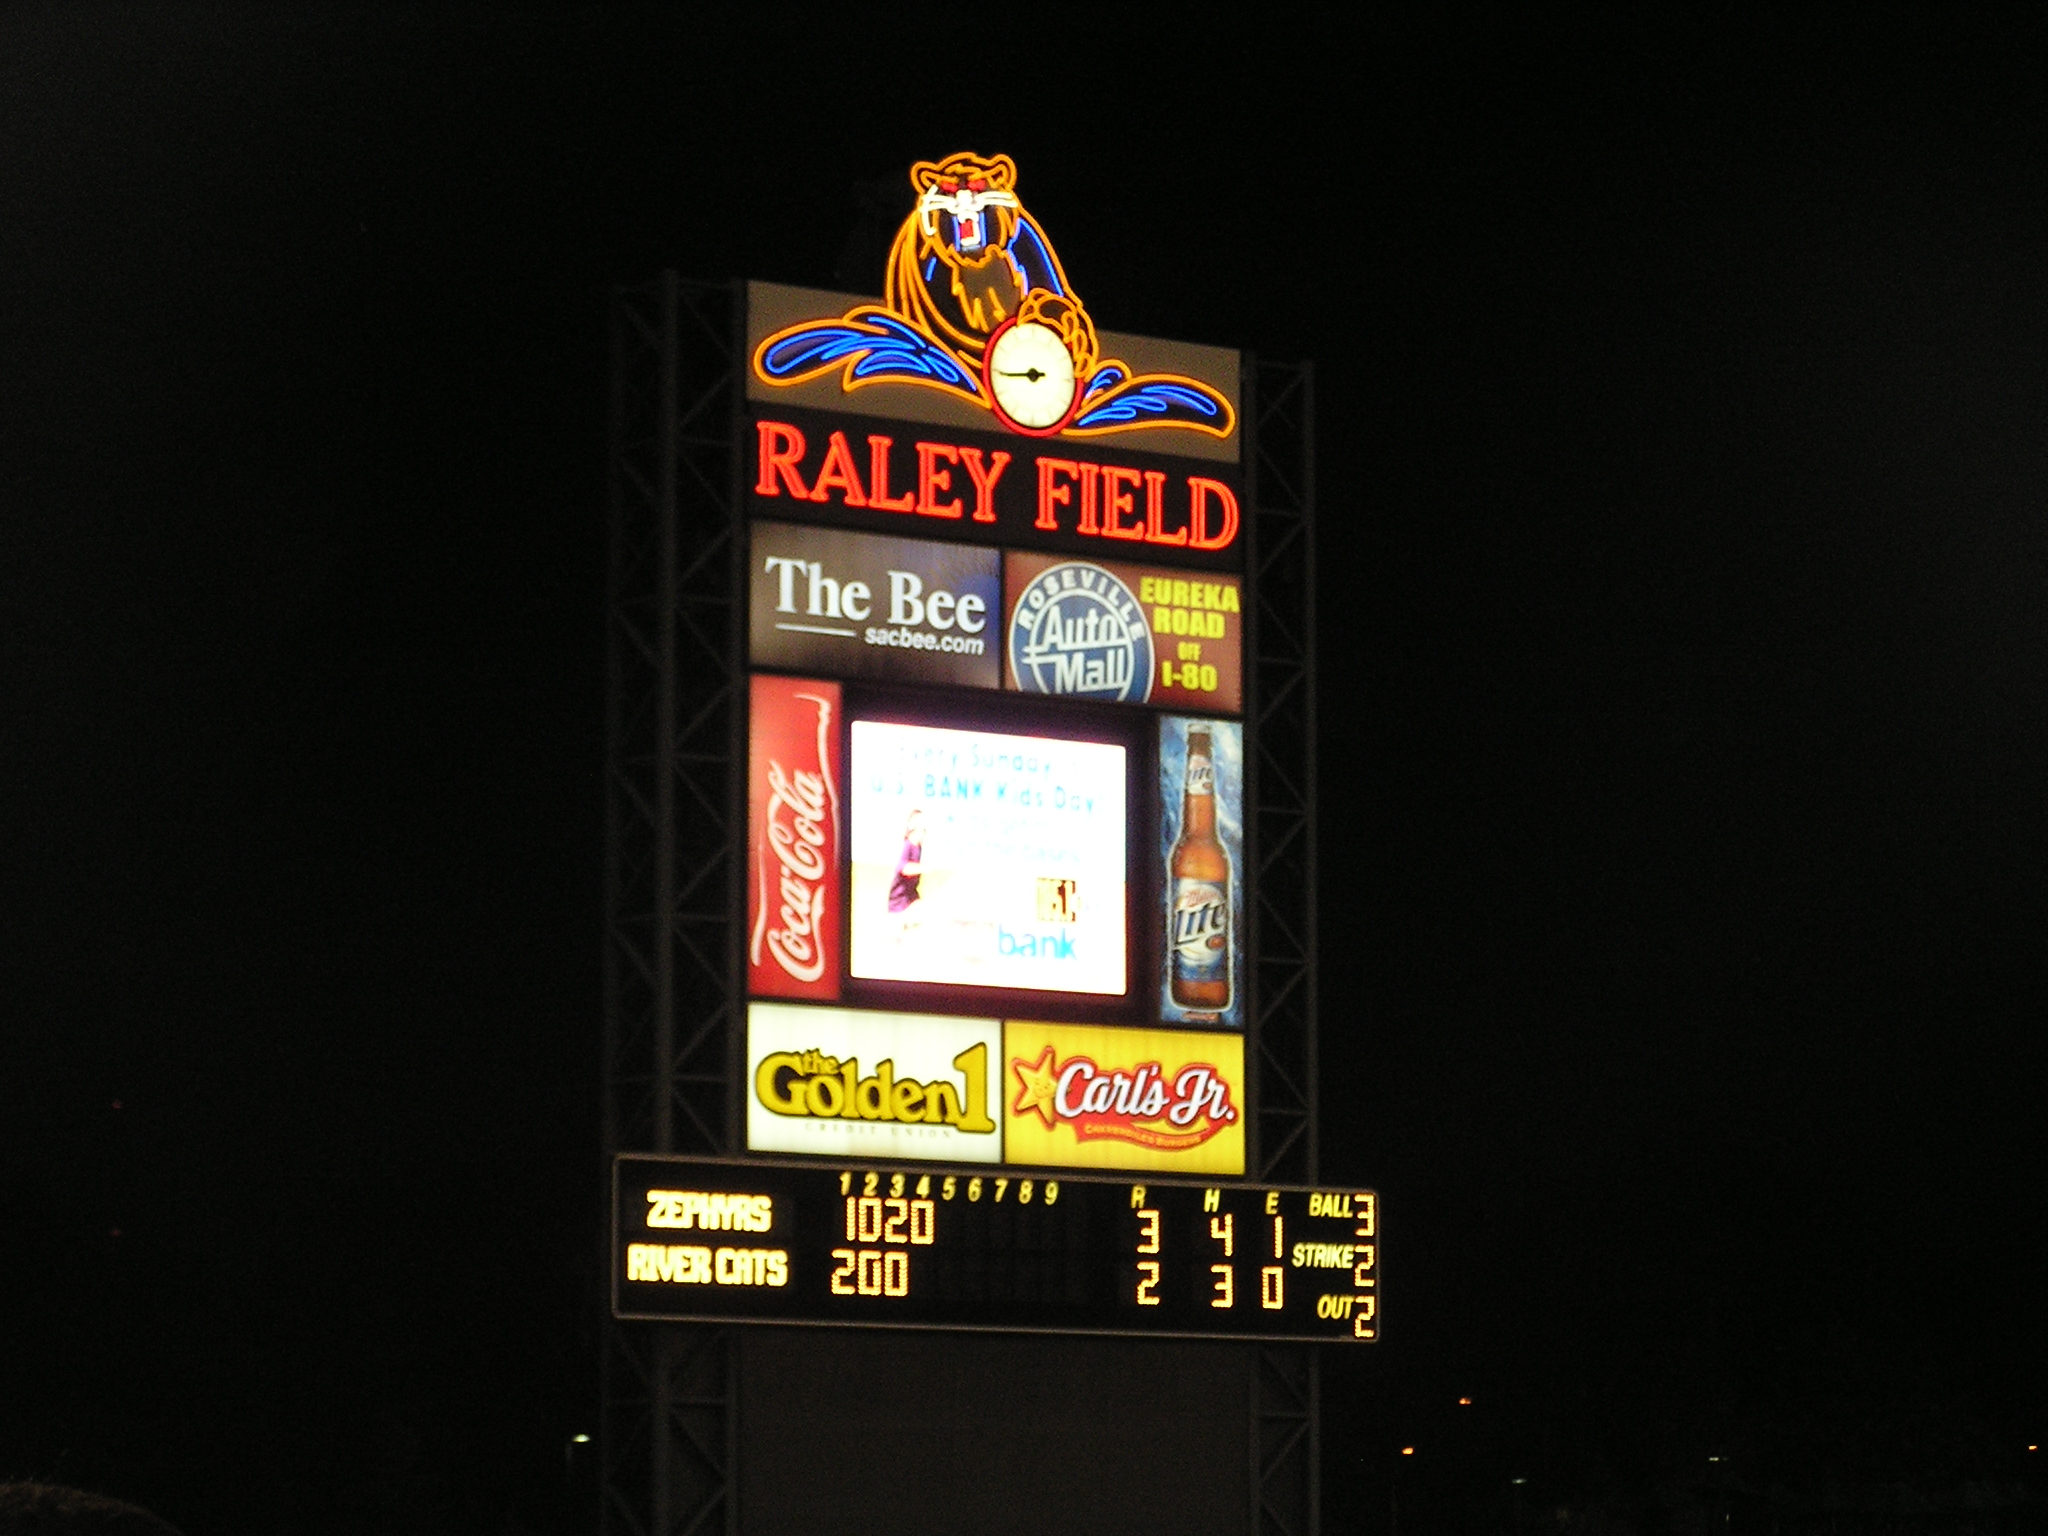 Raley Field Scoreboard - Sacramento River Cats